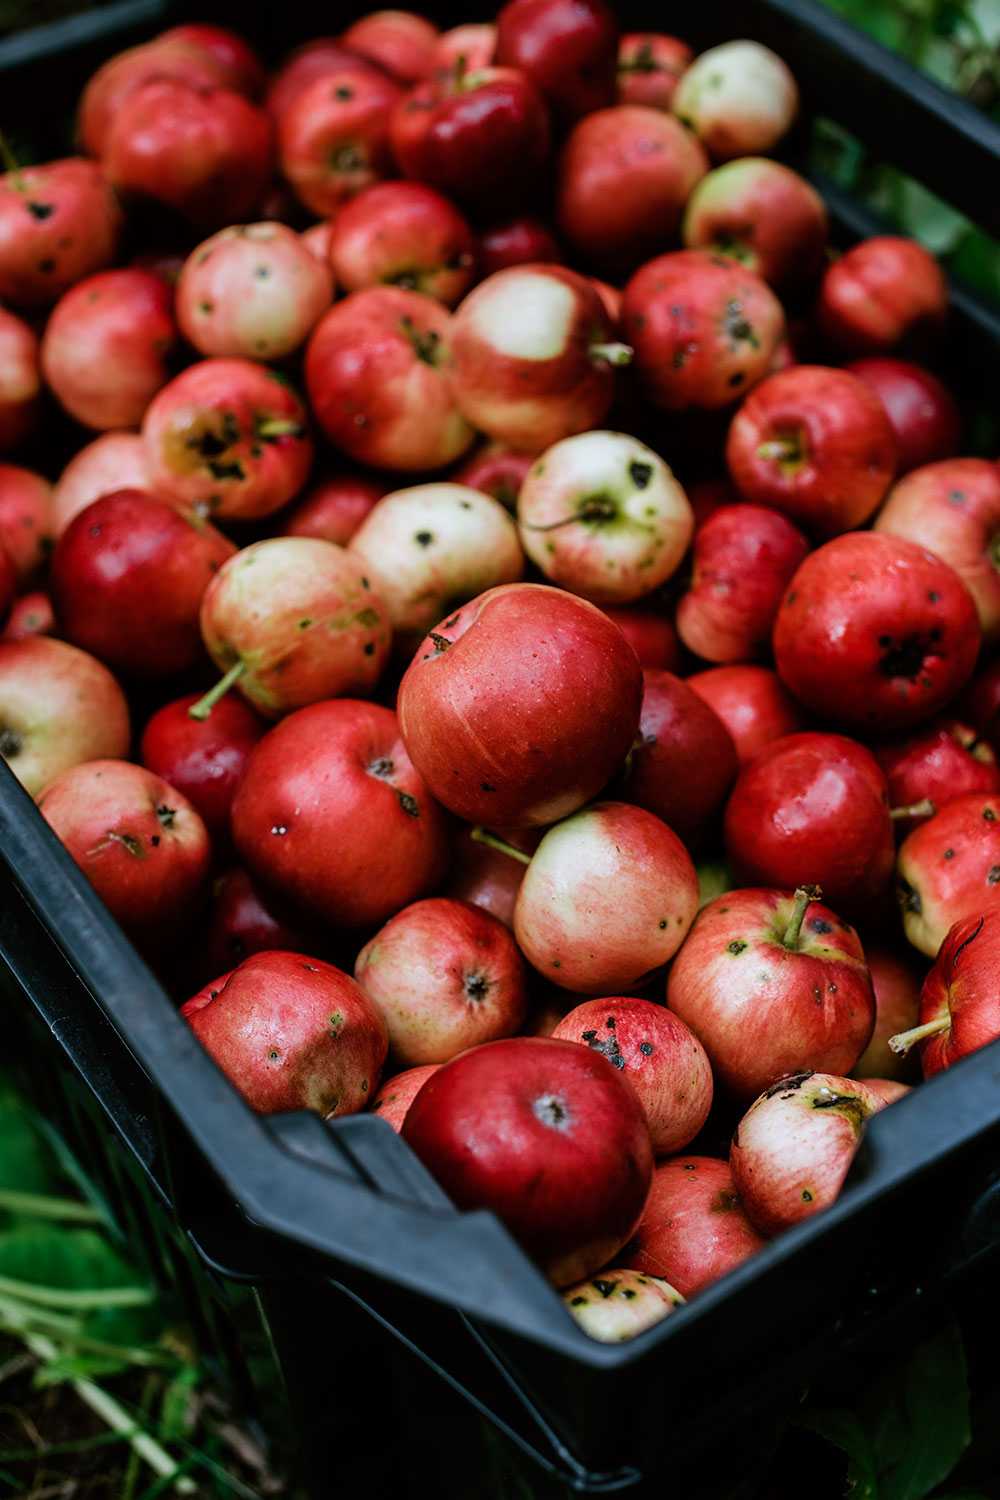 A whole crate of freshly picked apples